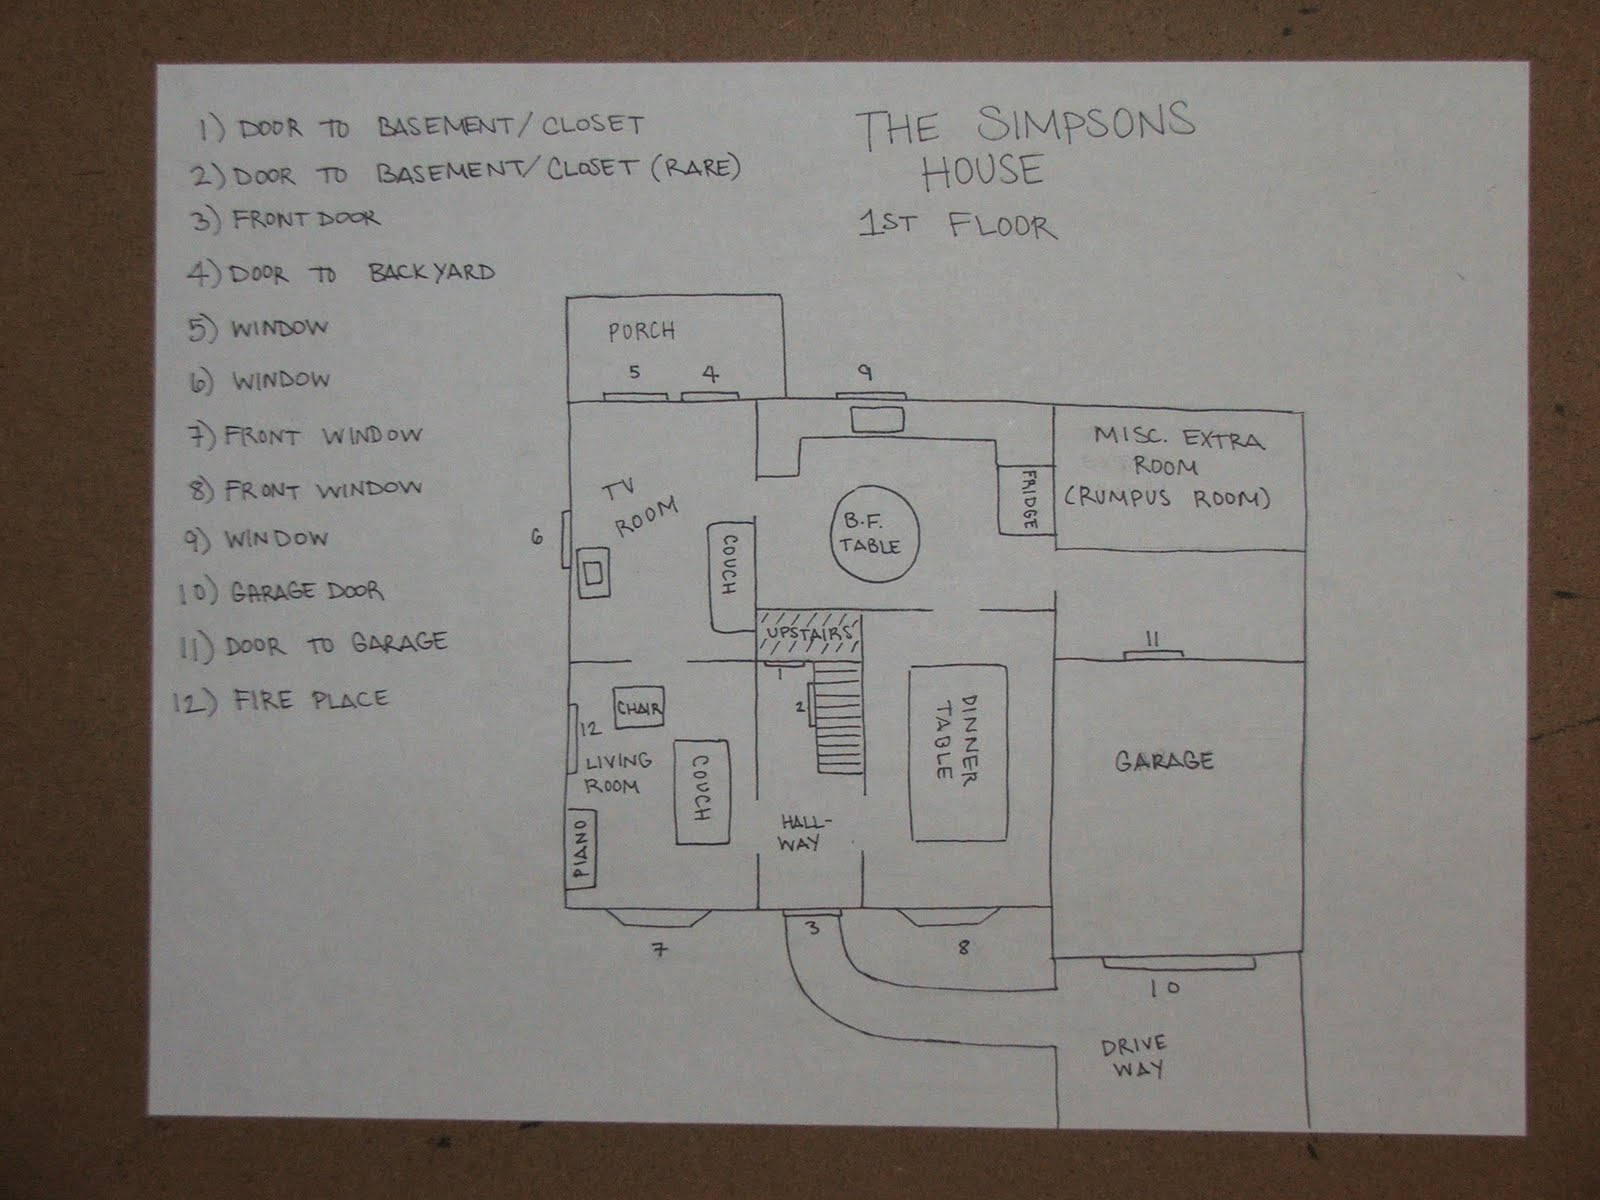 The simpsons house floor plan for Simpsons house floor plan